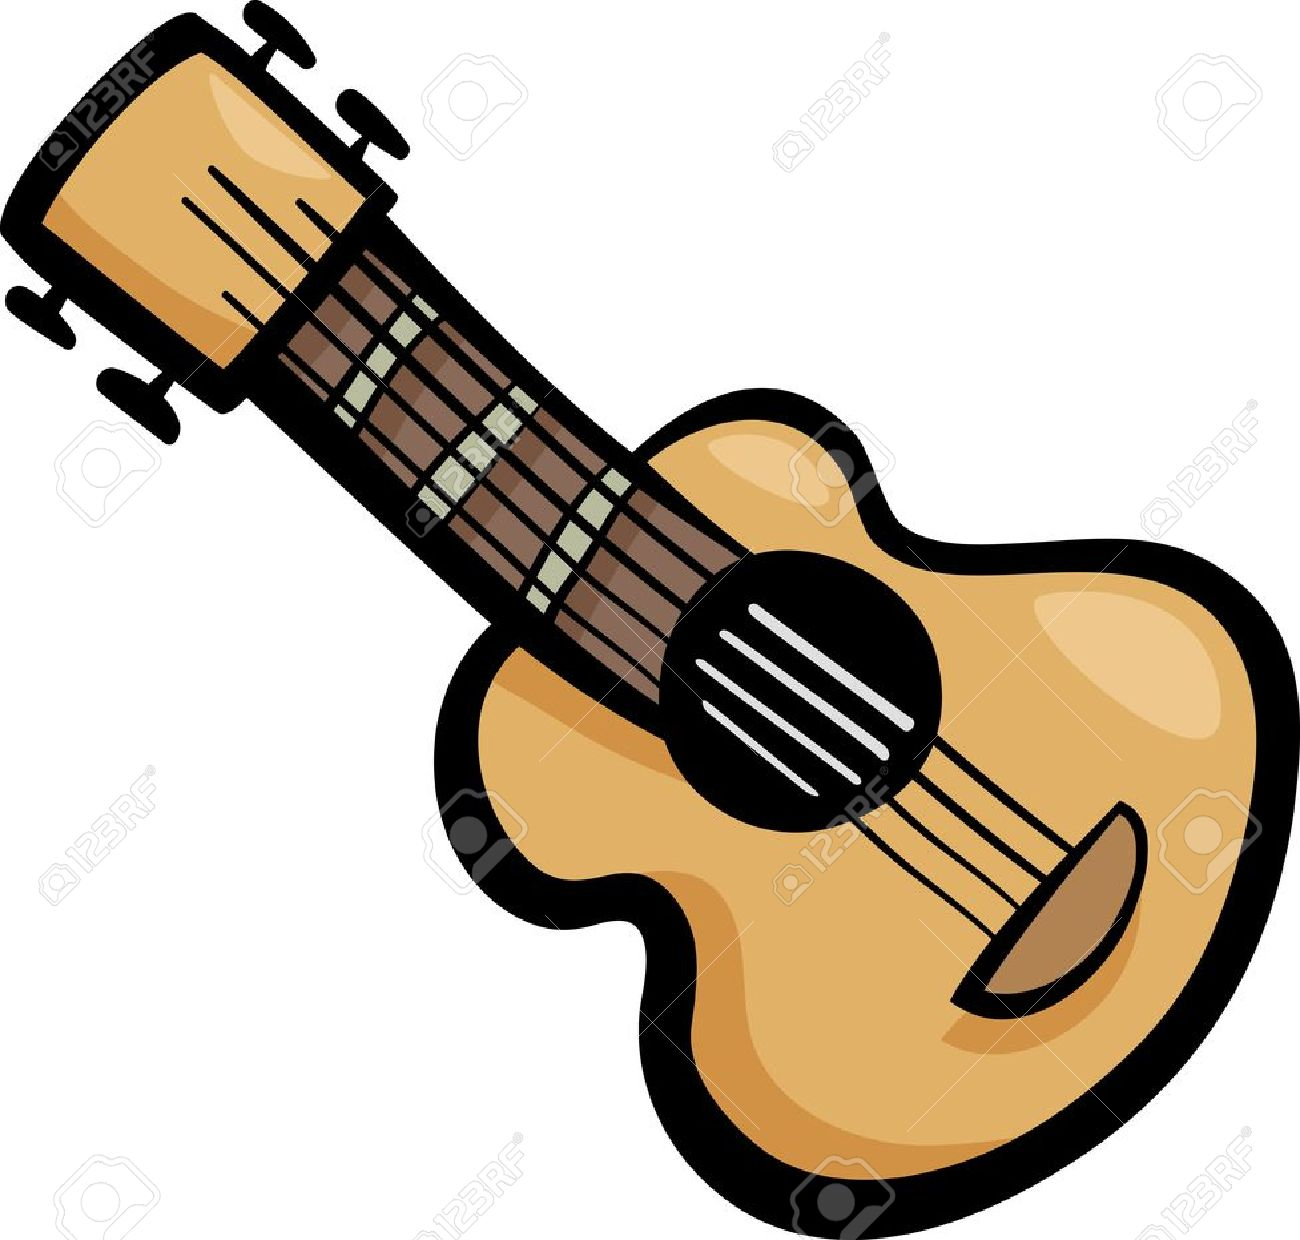 Cartoon Illustration Of Acoustic Guitar Ear Clip Art Royalty Free.